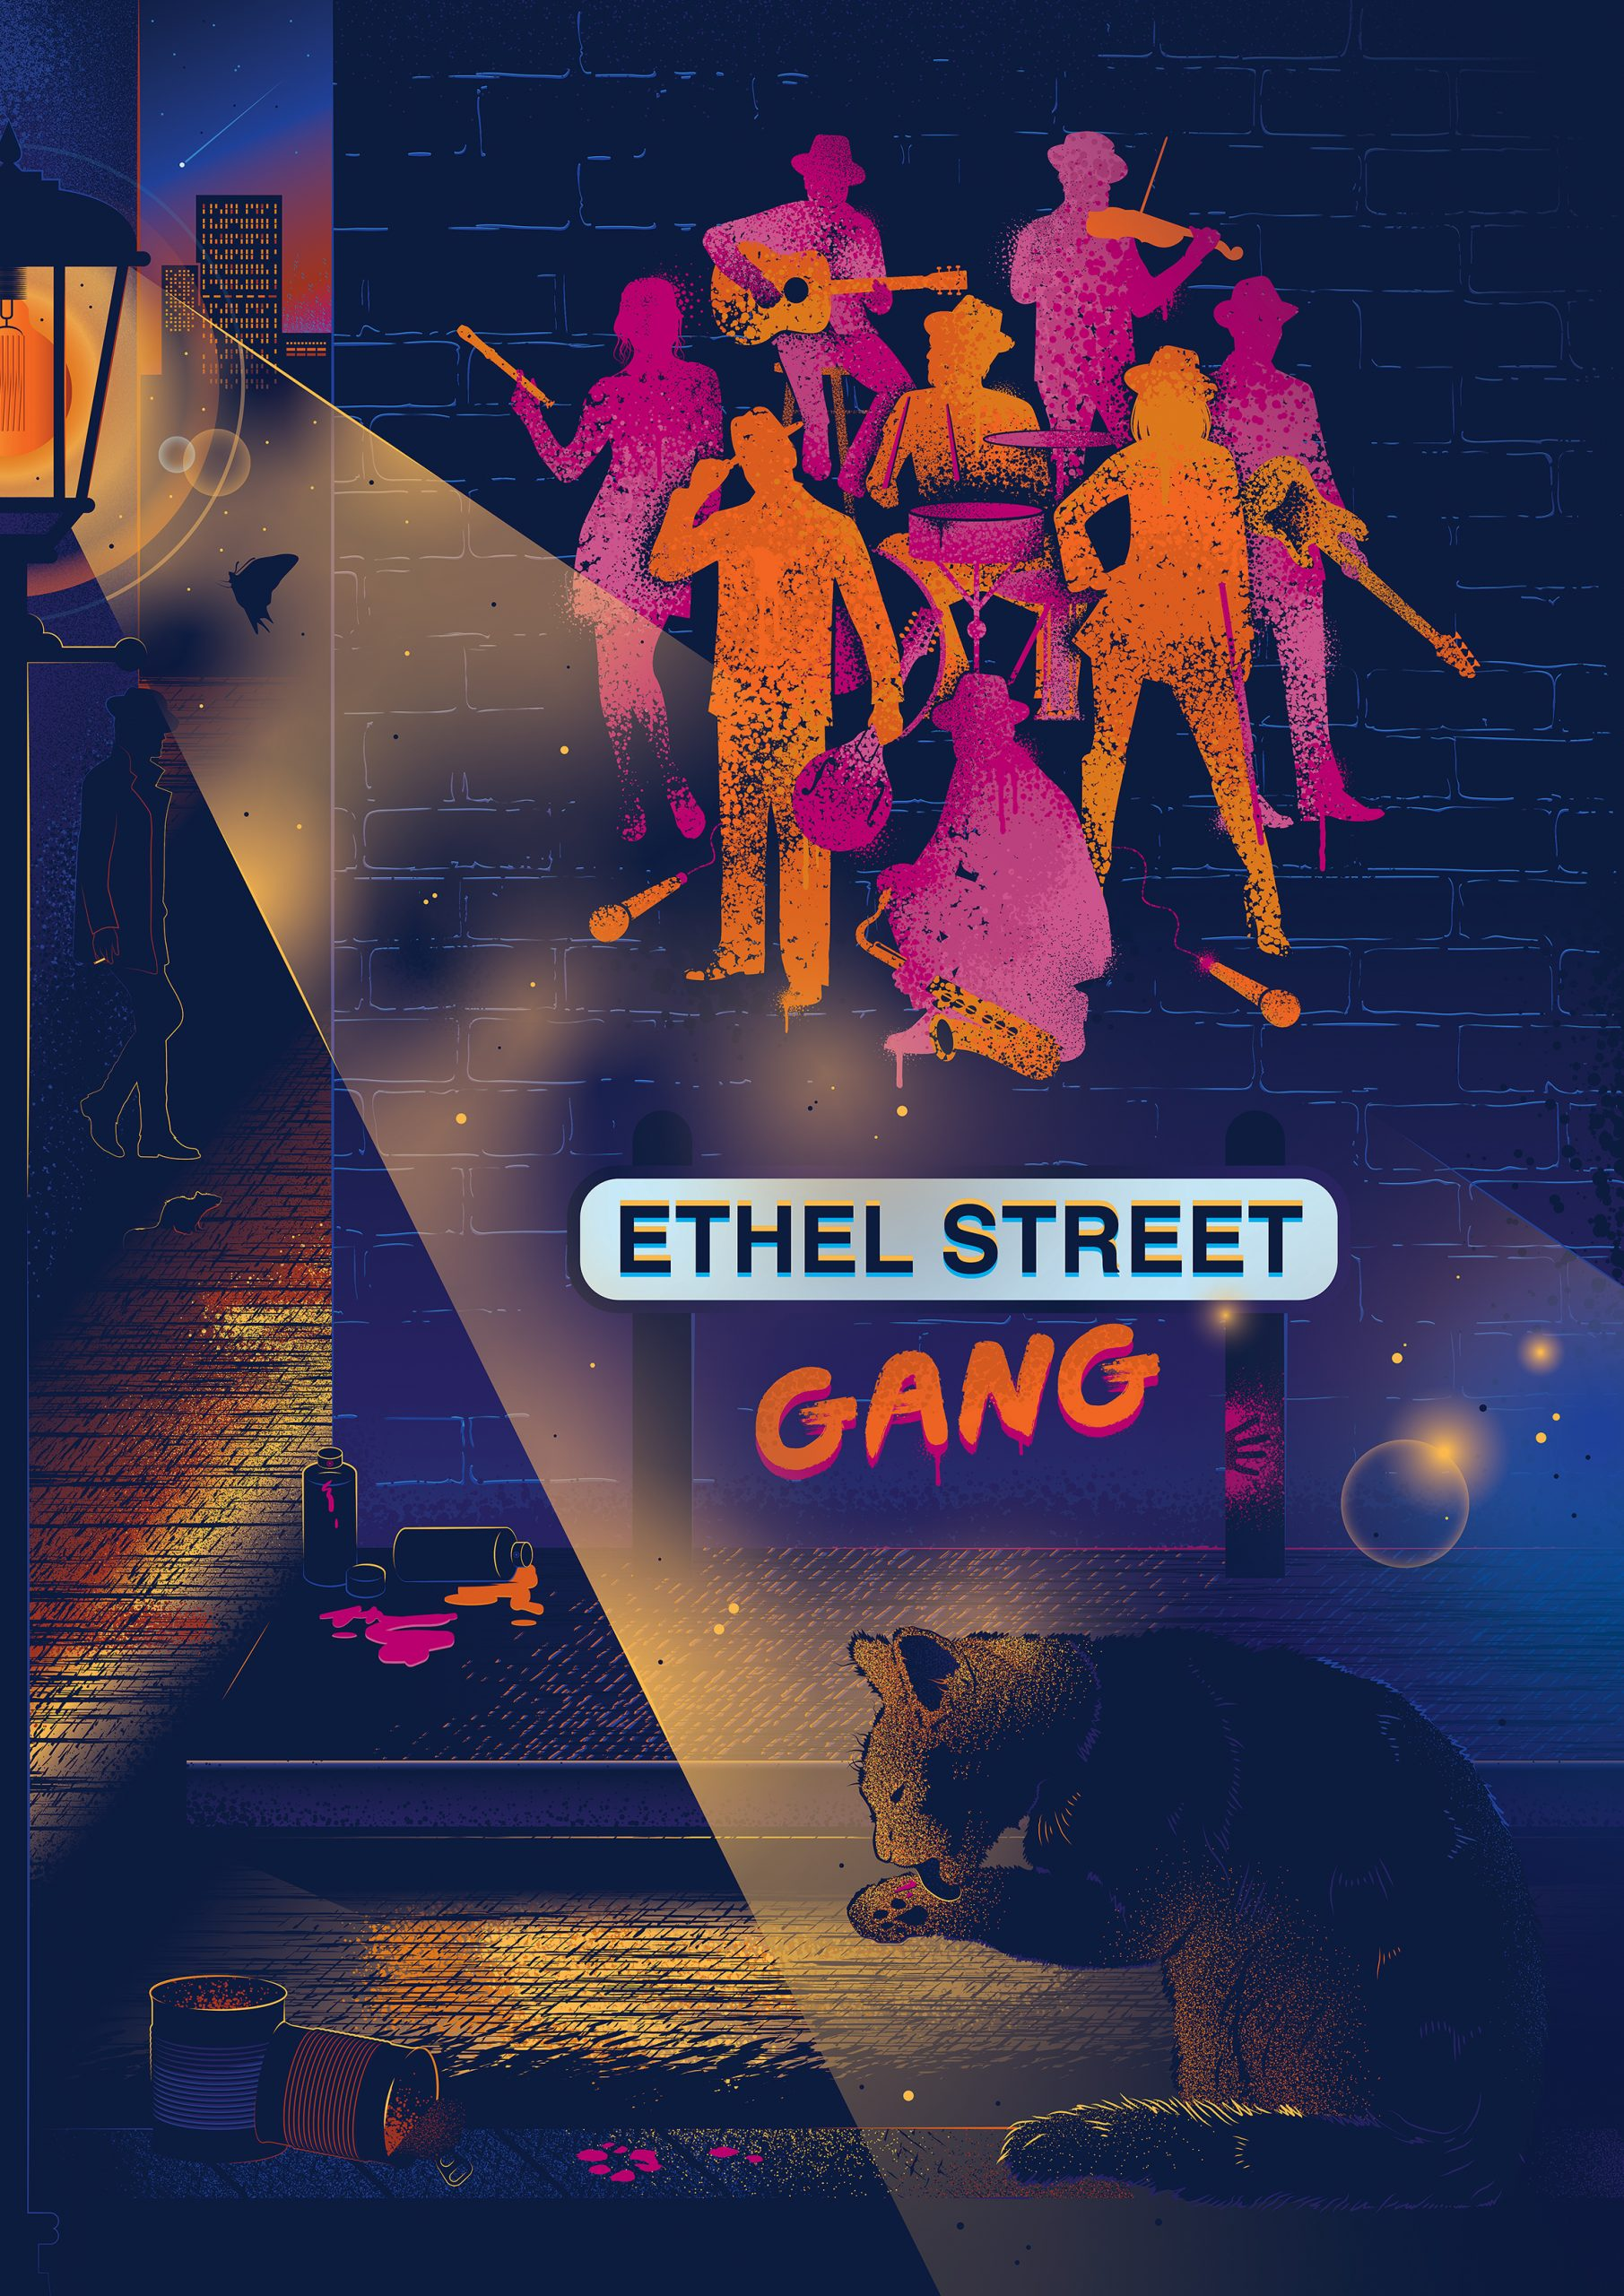 Ethel Street Gang Band Poster